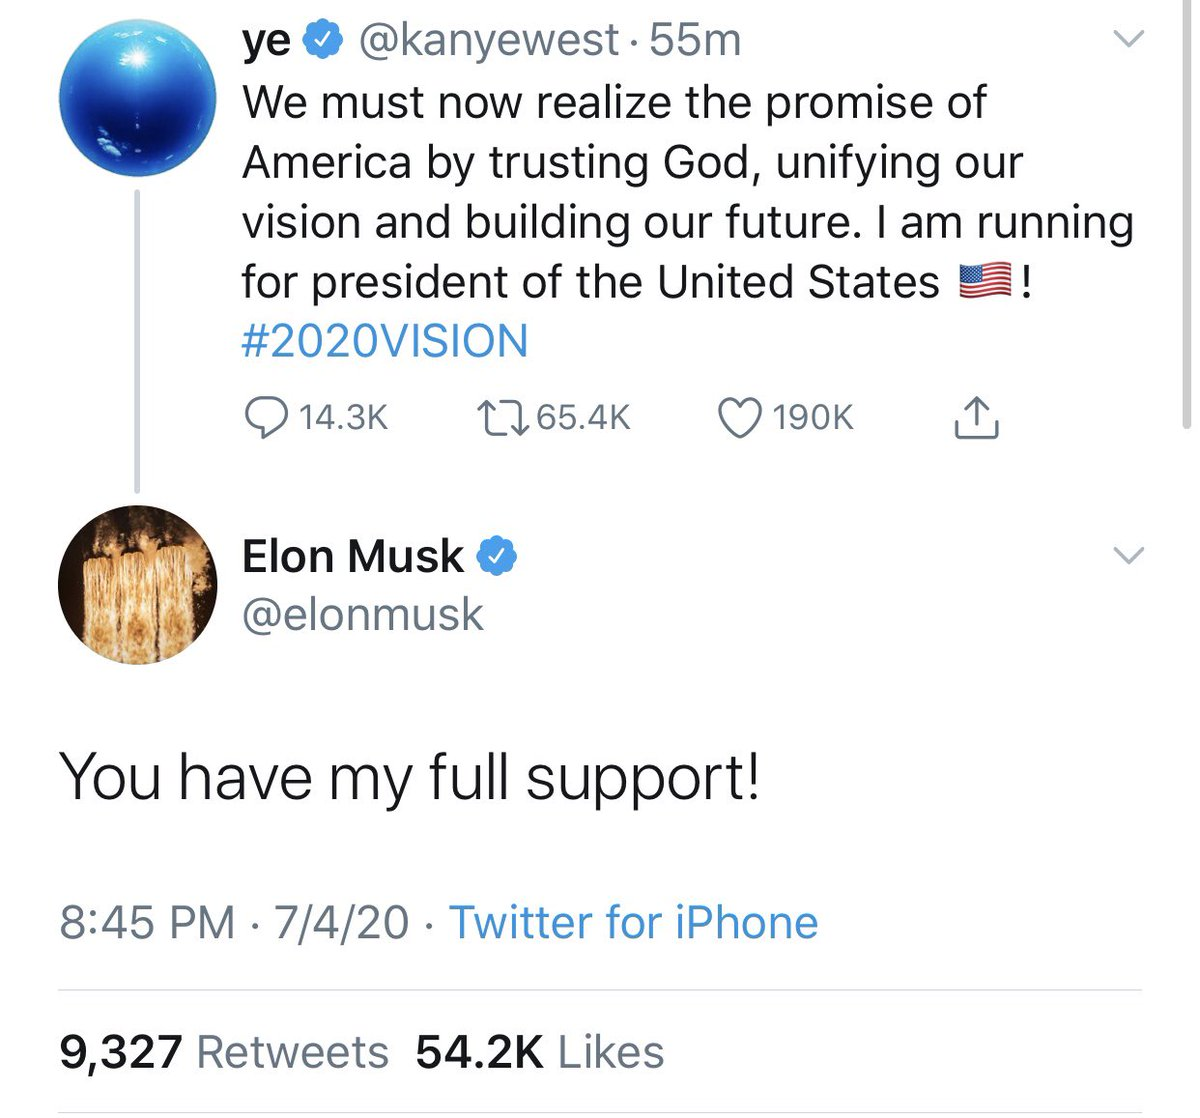 Kanye West and Elon Musk are treating the most consequential election of our lifetime as a joke - consequences their money will shield them from.  We're sick of being trolled by oversized egos.  Step up in a meaningful way to help us defeat Trump or sit down quietly.  #2020Vision https://t.co/LQcErOydB2